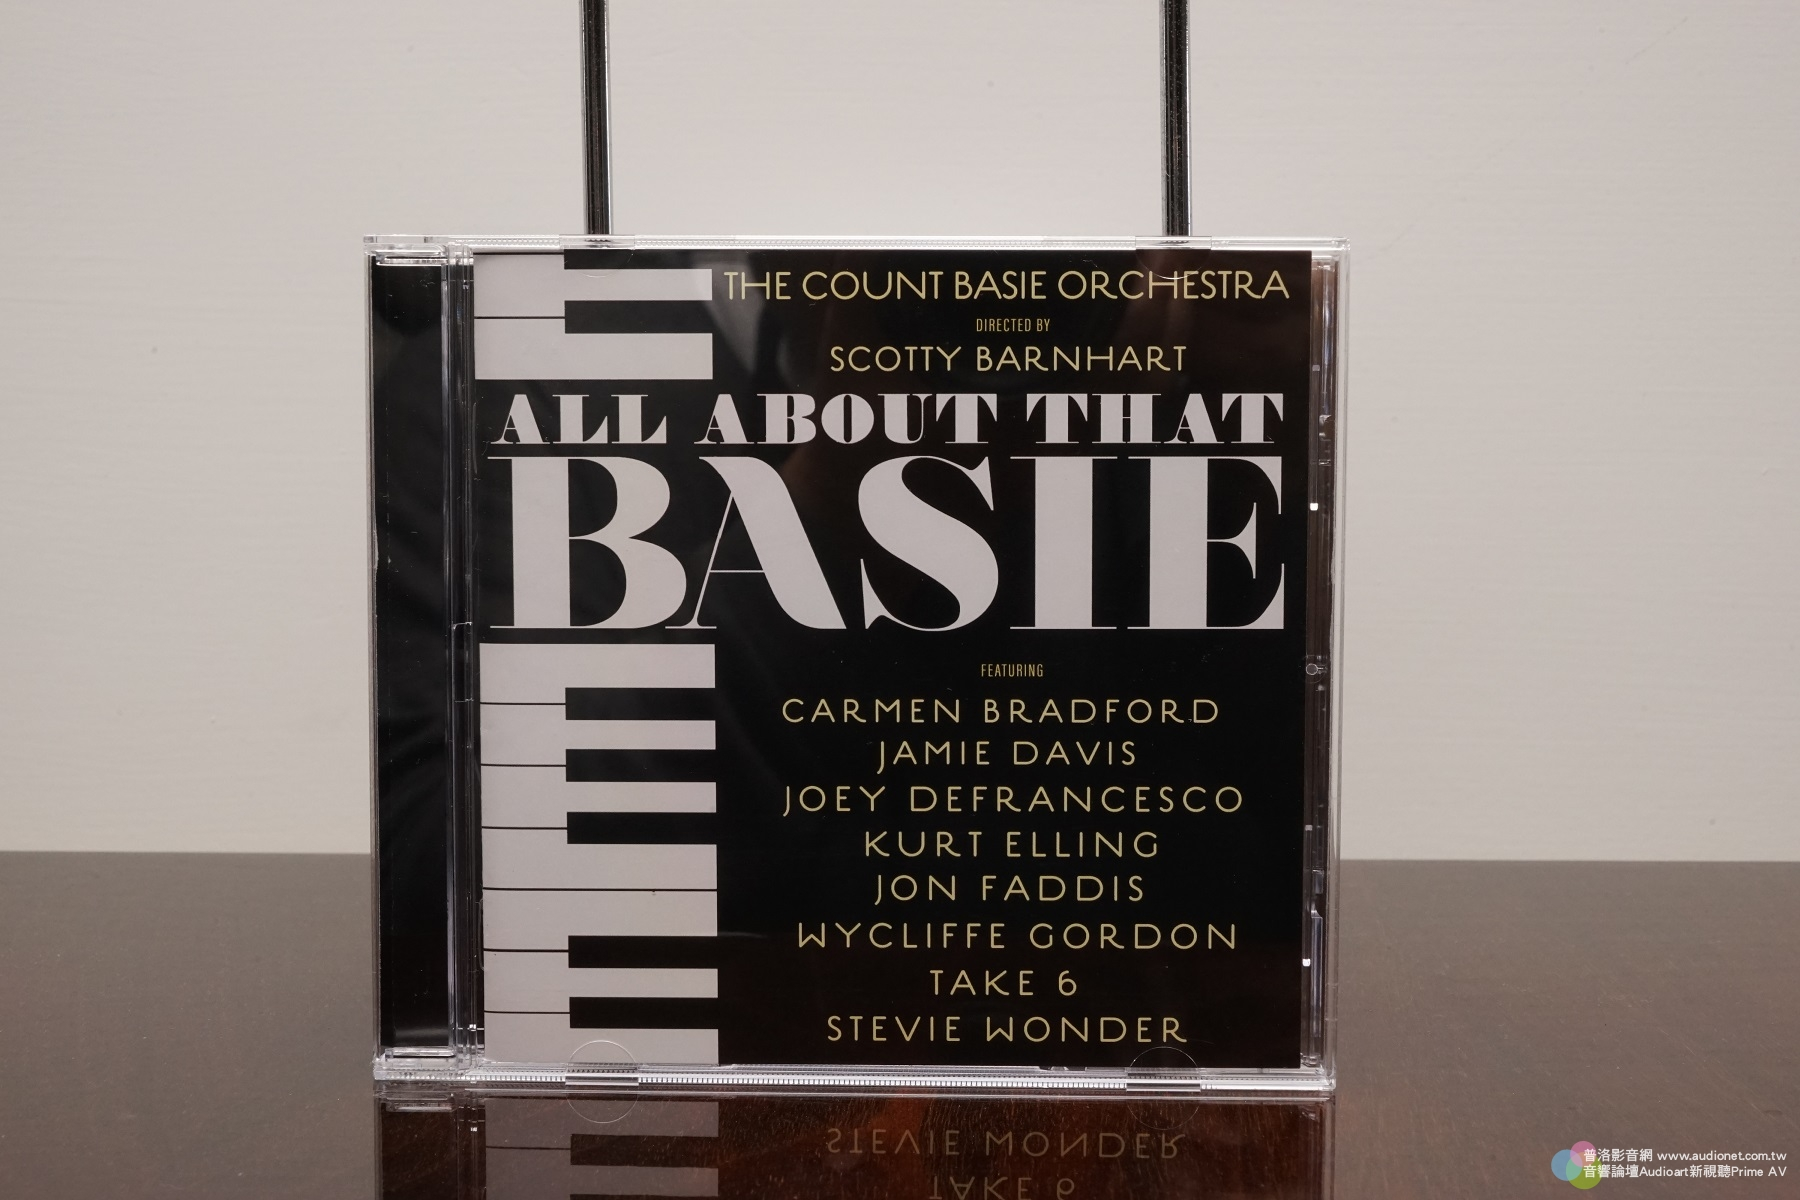 All About The Basie,足以當音響Reference